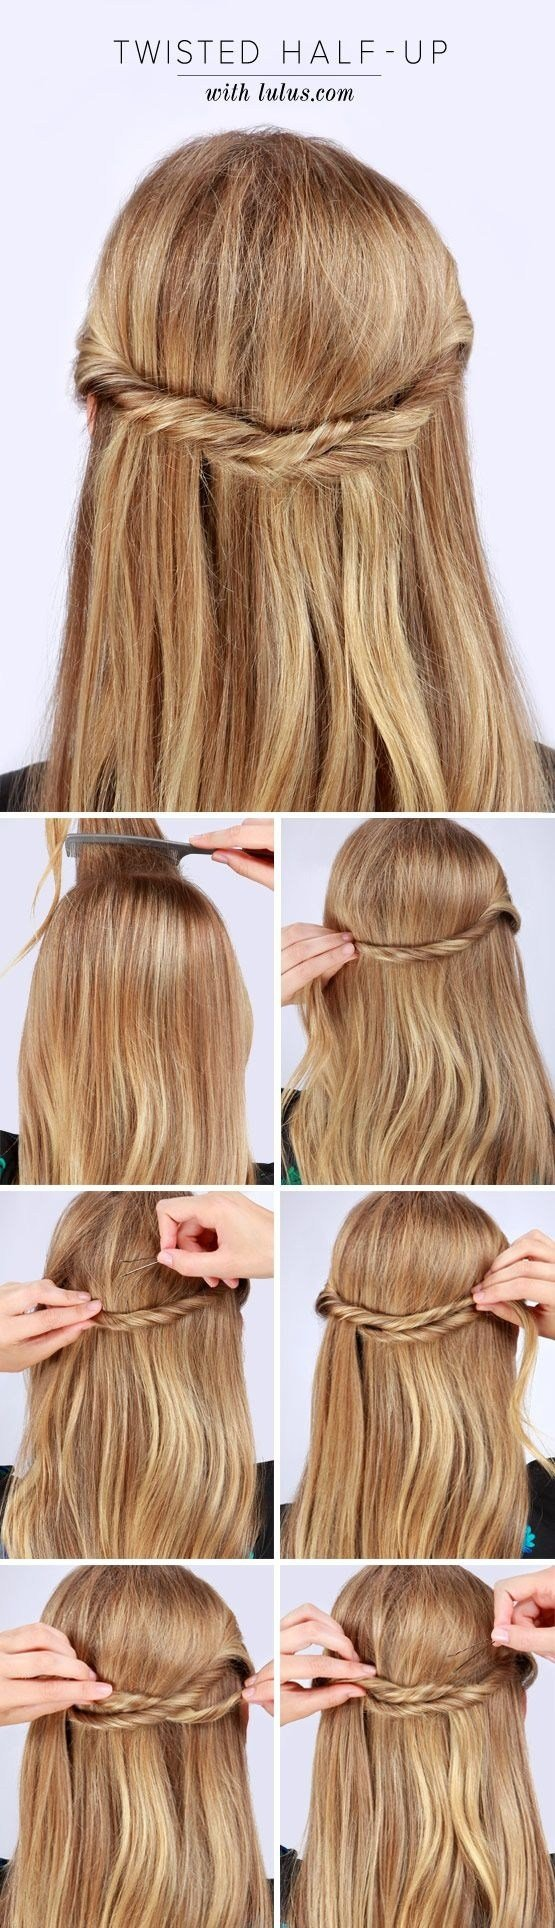 The Best 20 Fabulous Half Up Half Down Hairstyles For 2016 Photo Tutorials Hairstyles Weekly Pictures